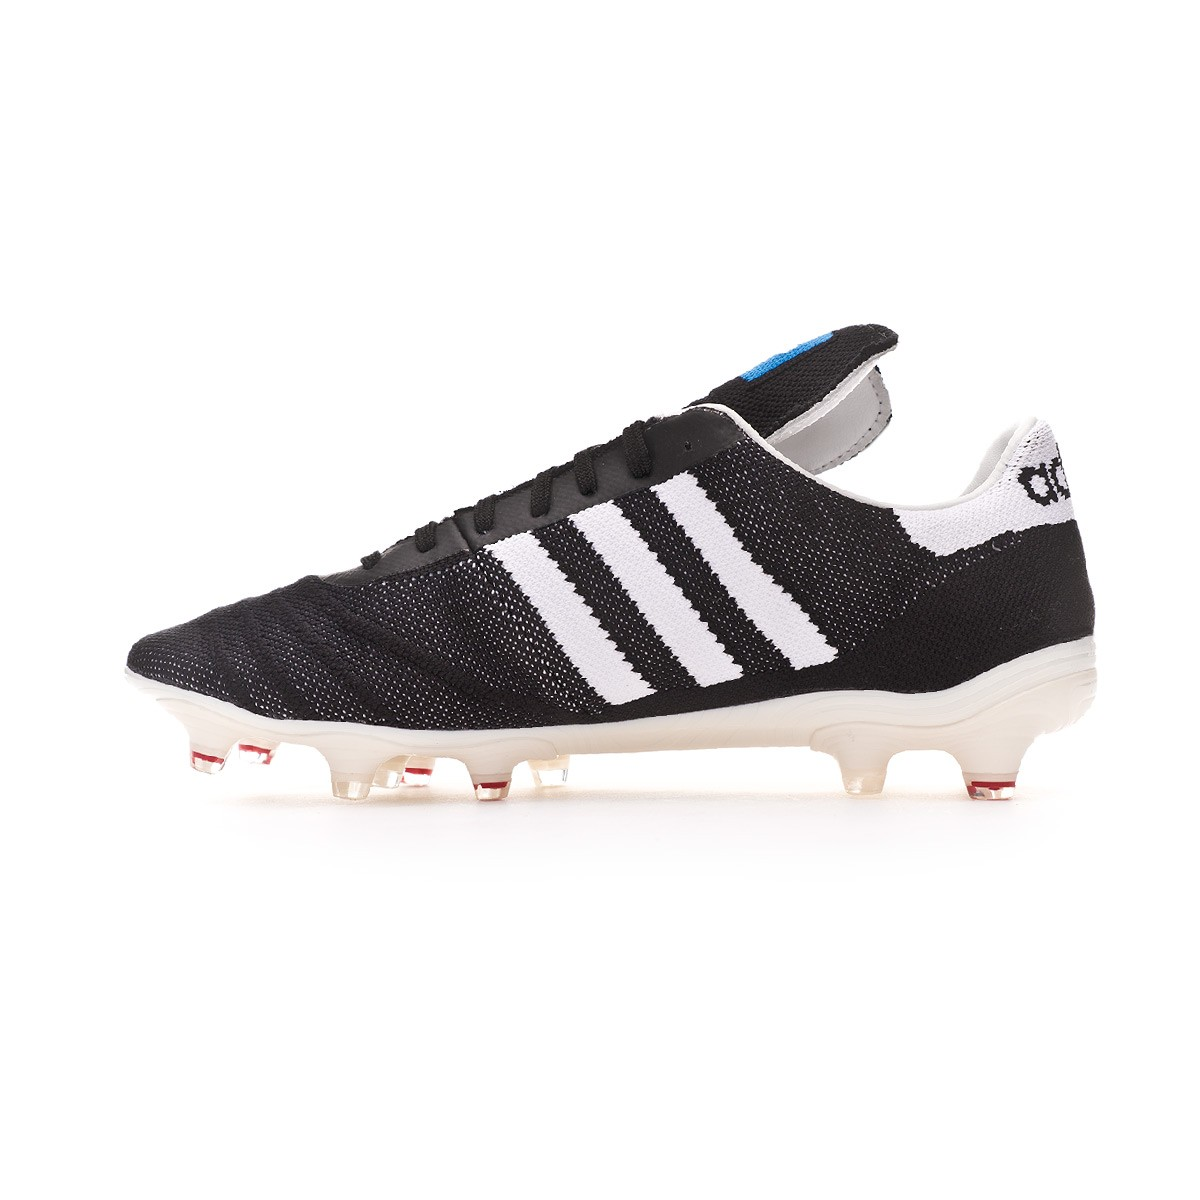 ce109f68 Football Boots adidas Copa 70Y FG Core Black-White-Red - Football store  Fútbol Emotion